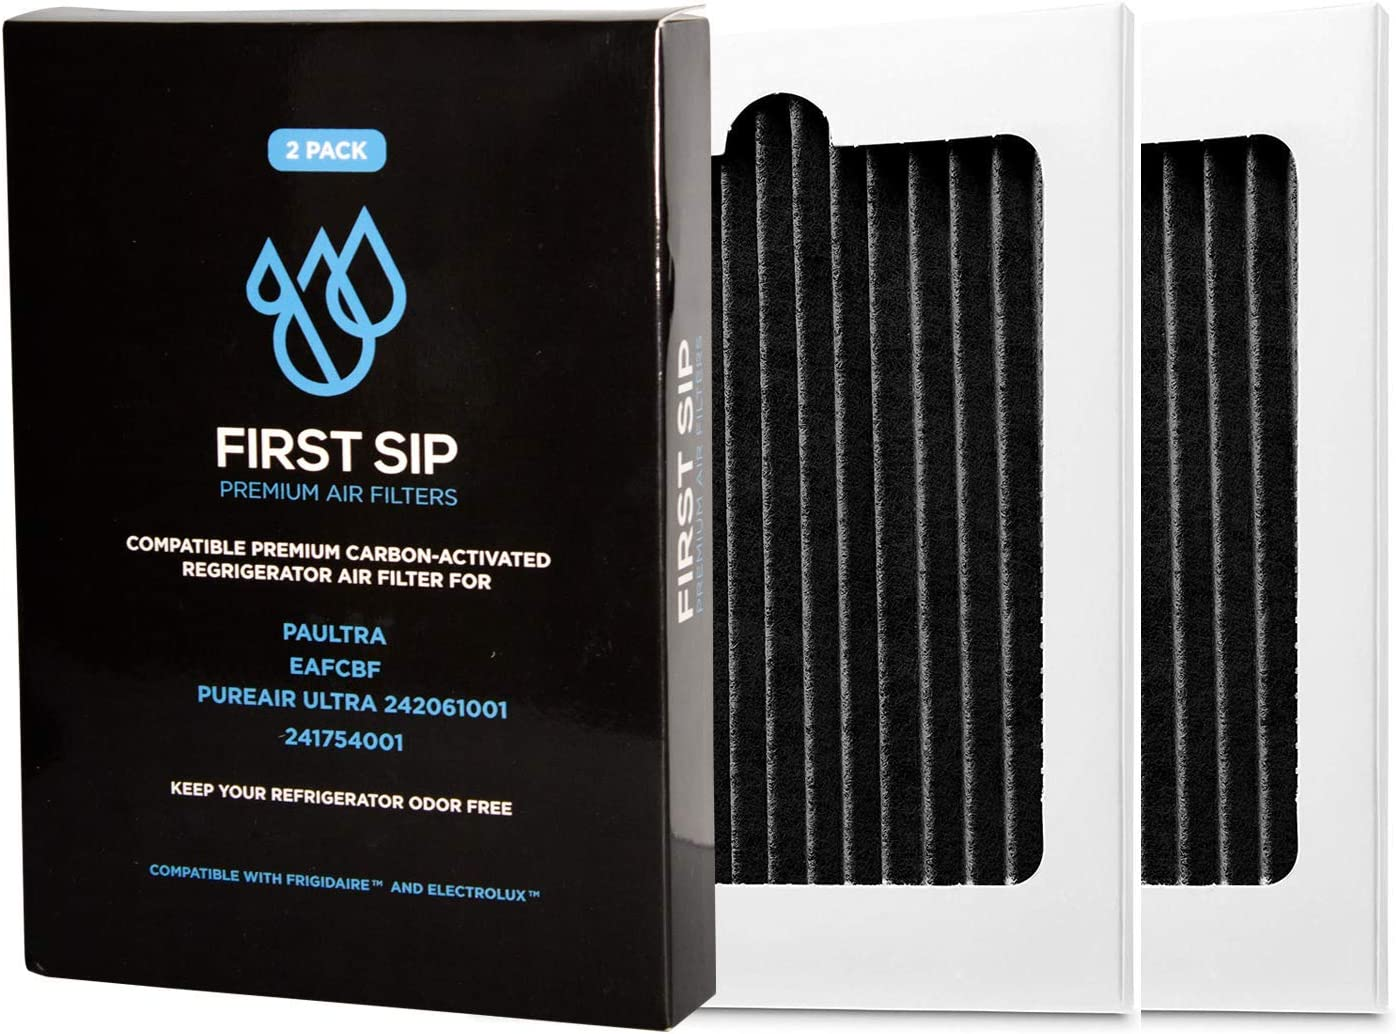 First Sip Refrigerator Air Filter Replacement 2-Pack Compatible With Frigidaire Pure Air Ultra, Electrolux, EAFCBF, PAULTRA, 242061001, 241754001, SP-FRAIR!